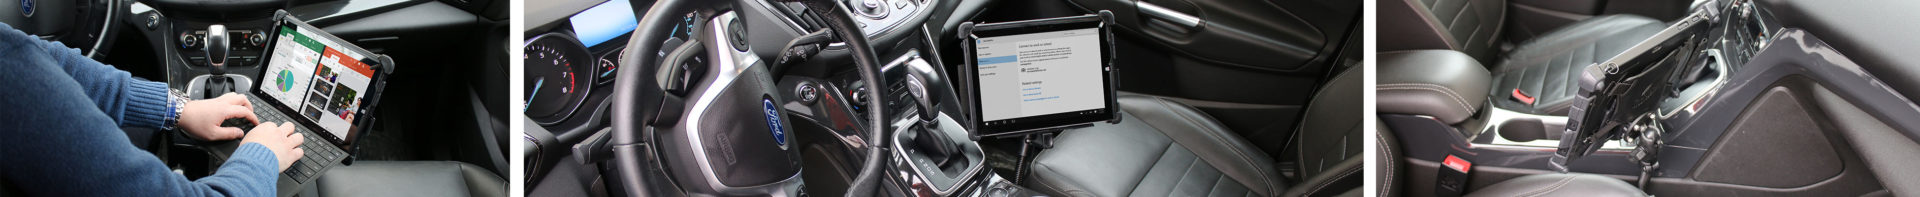 Surface-Vehicle-Mount-Tablet